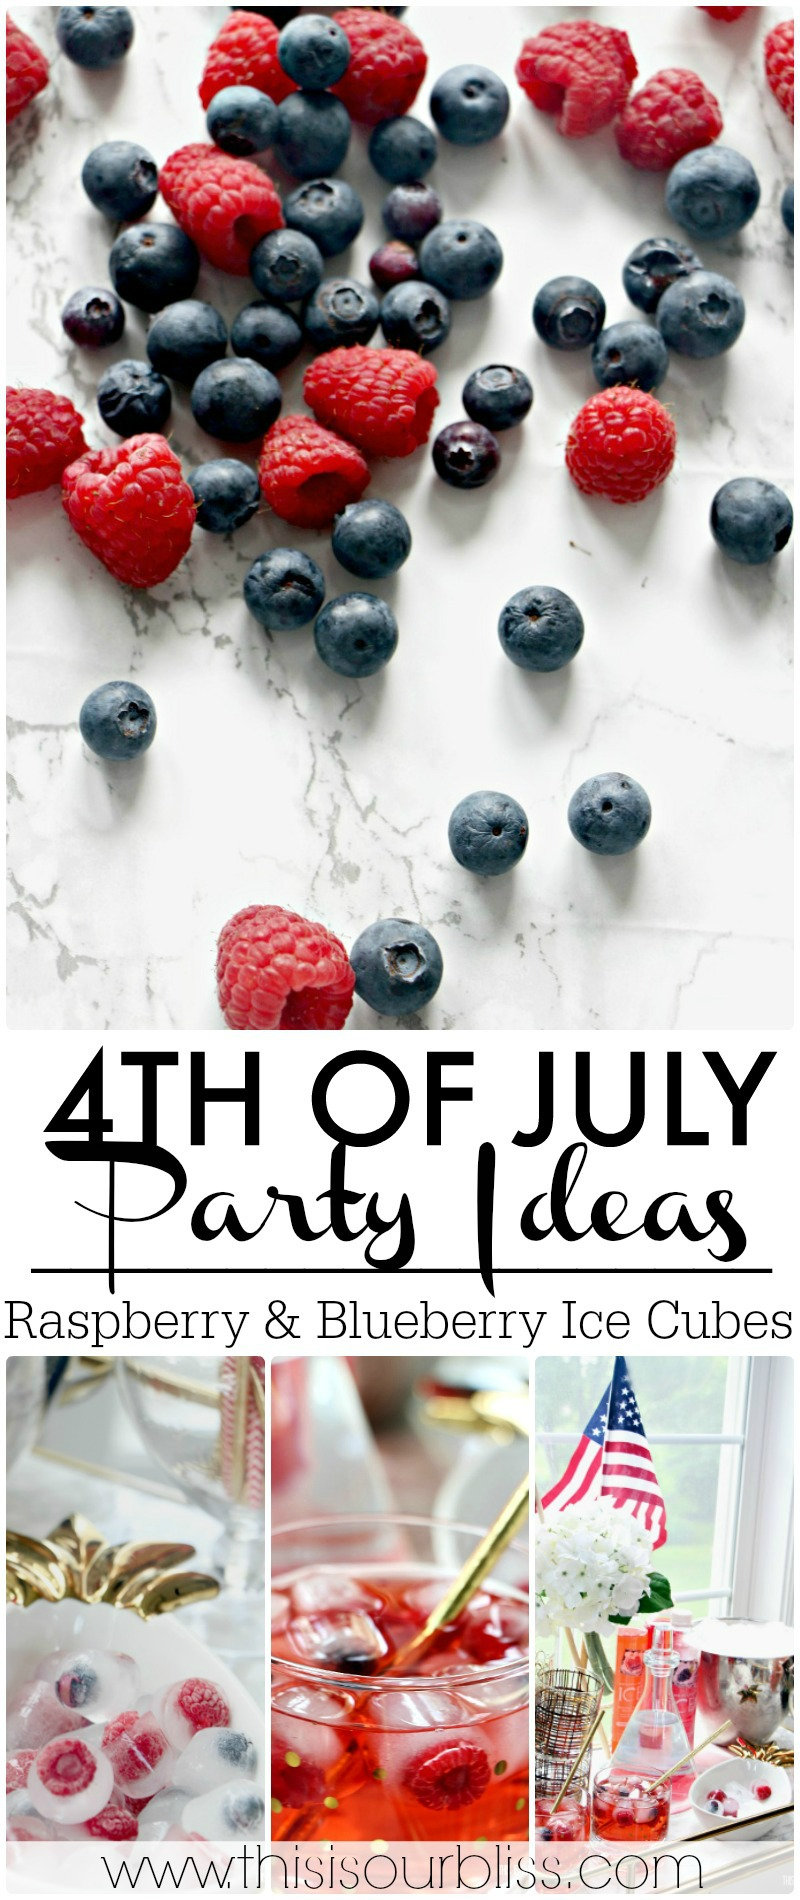 Festive 4th of July Ideas | Blueberry & Raspberry Ice Cubes Perfect for Any cocktail or Mocktail at your Holiday BBQ! | This is our Bliss